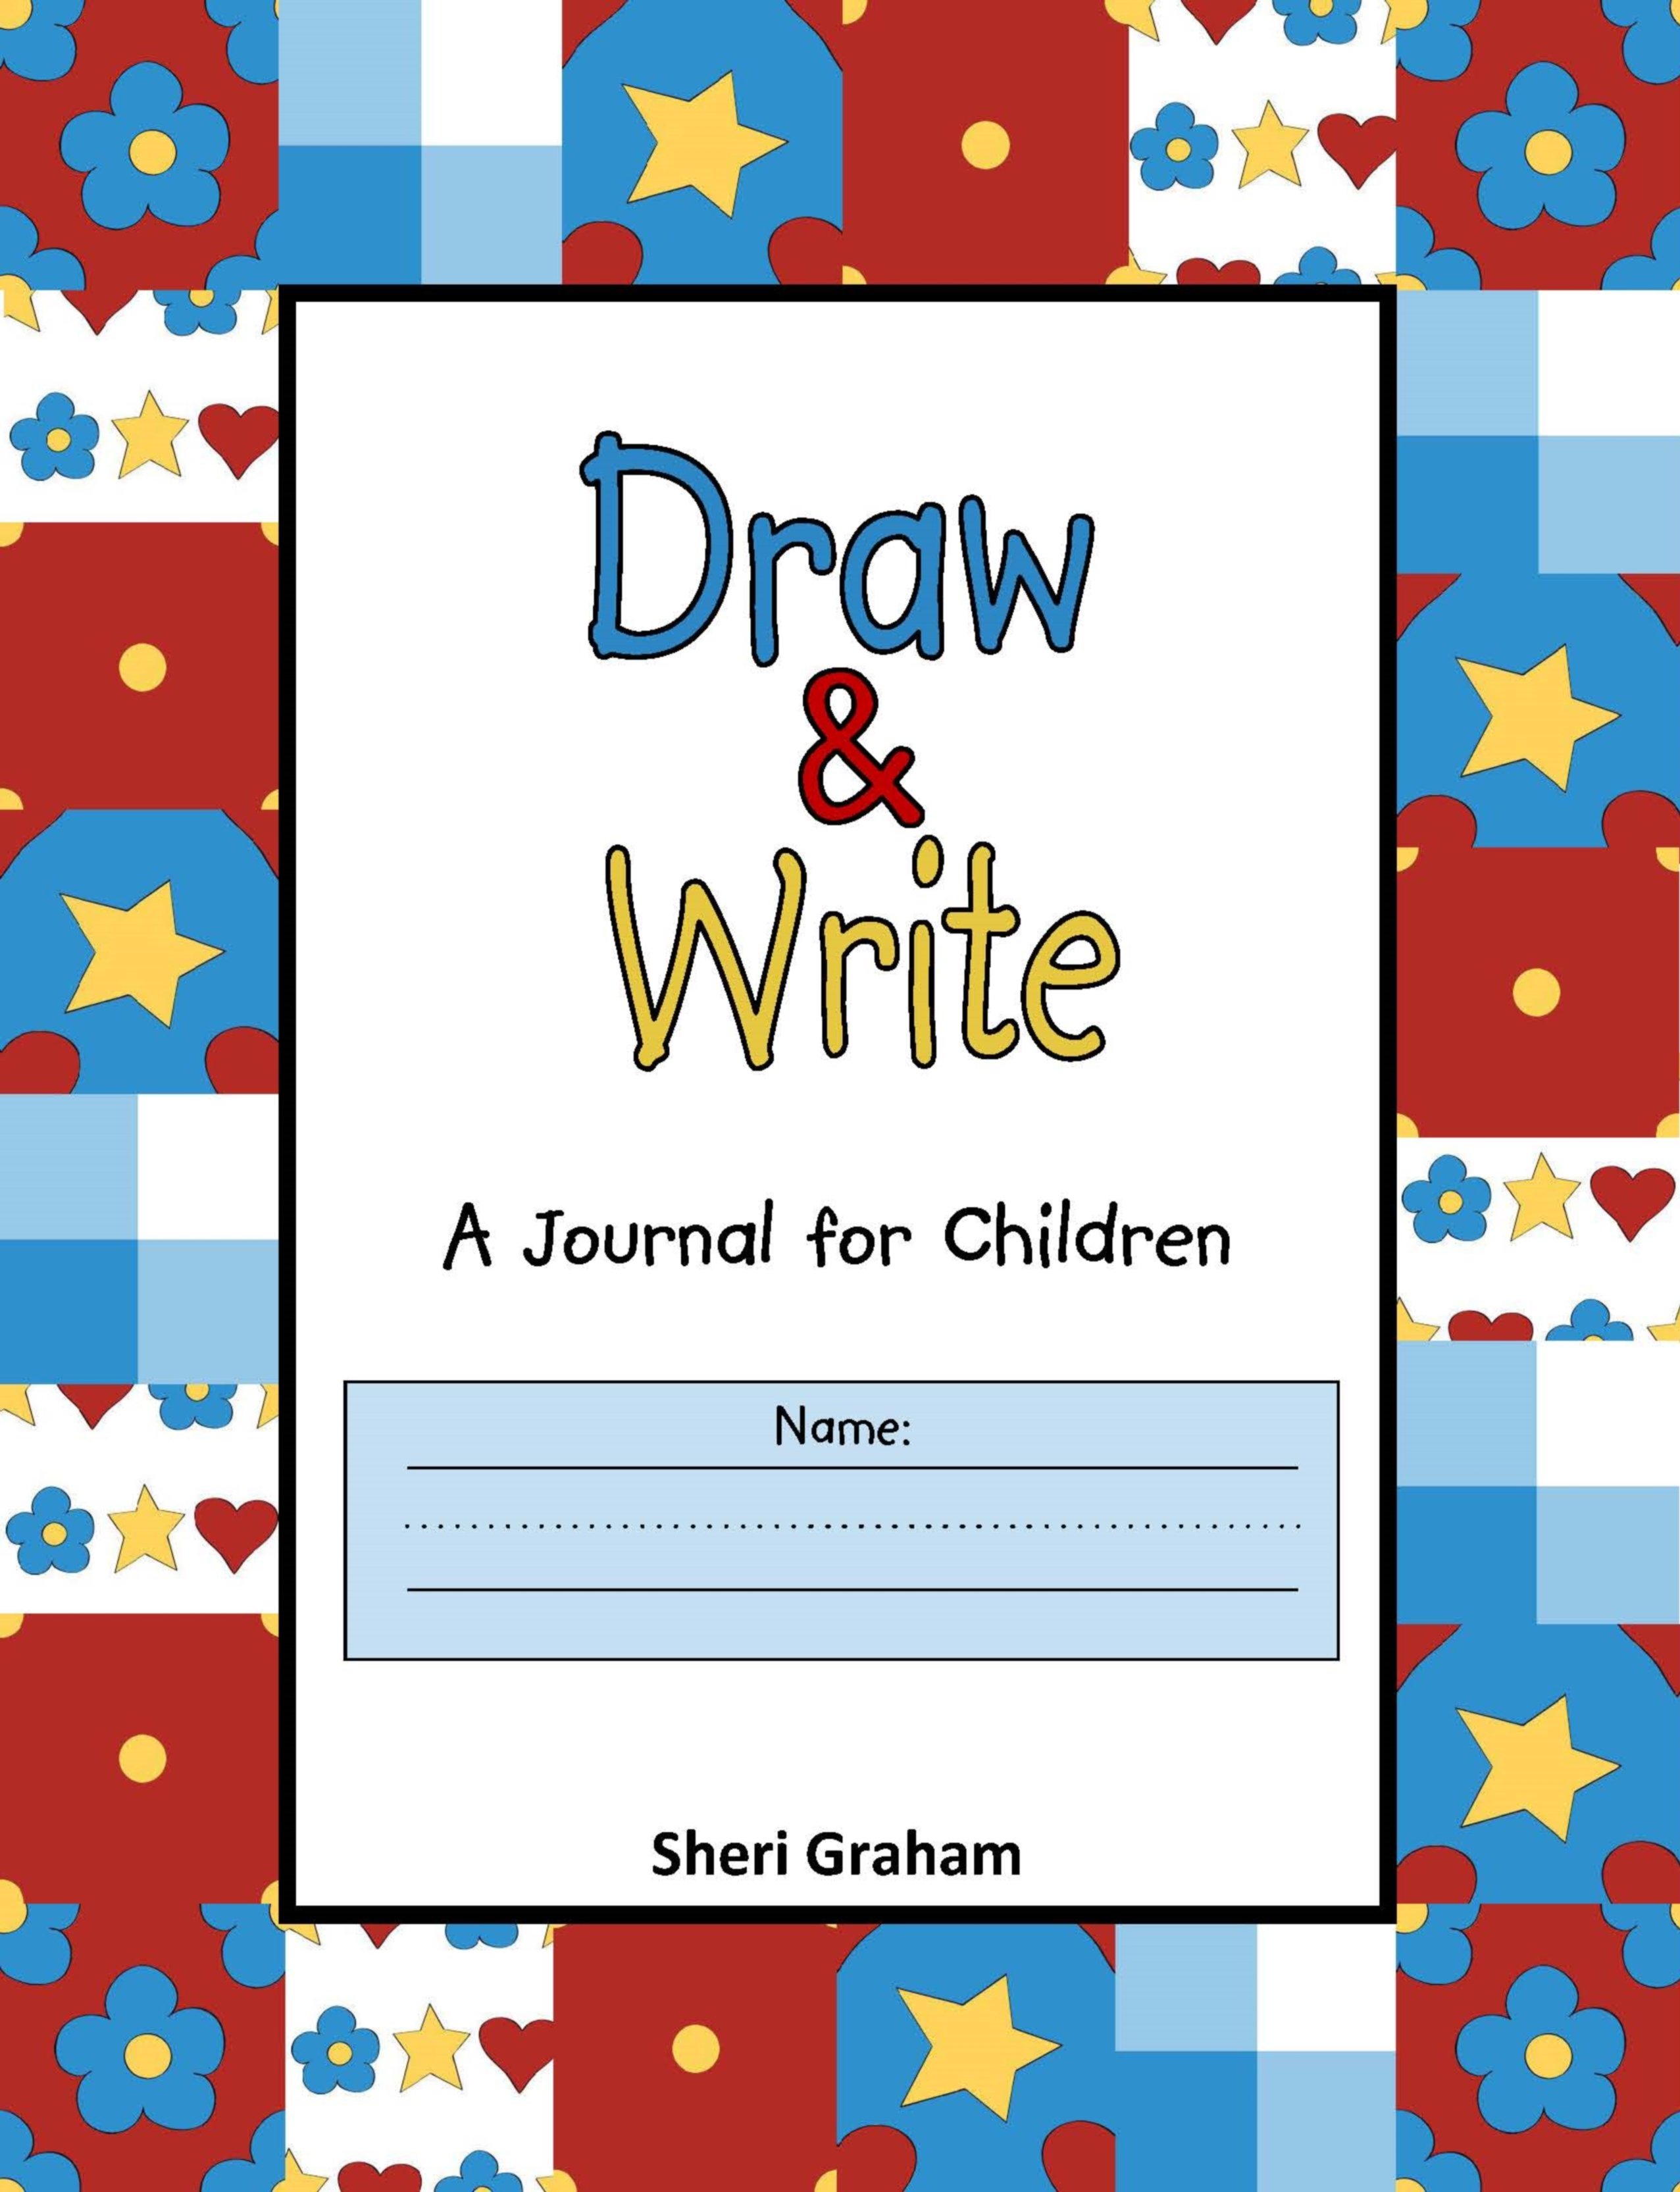 Draw & Write - A Journal for Children (Softcover)